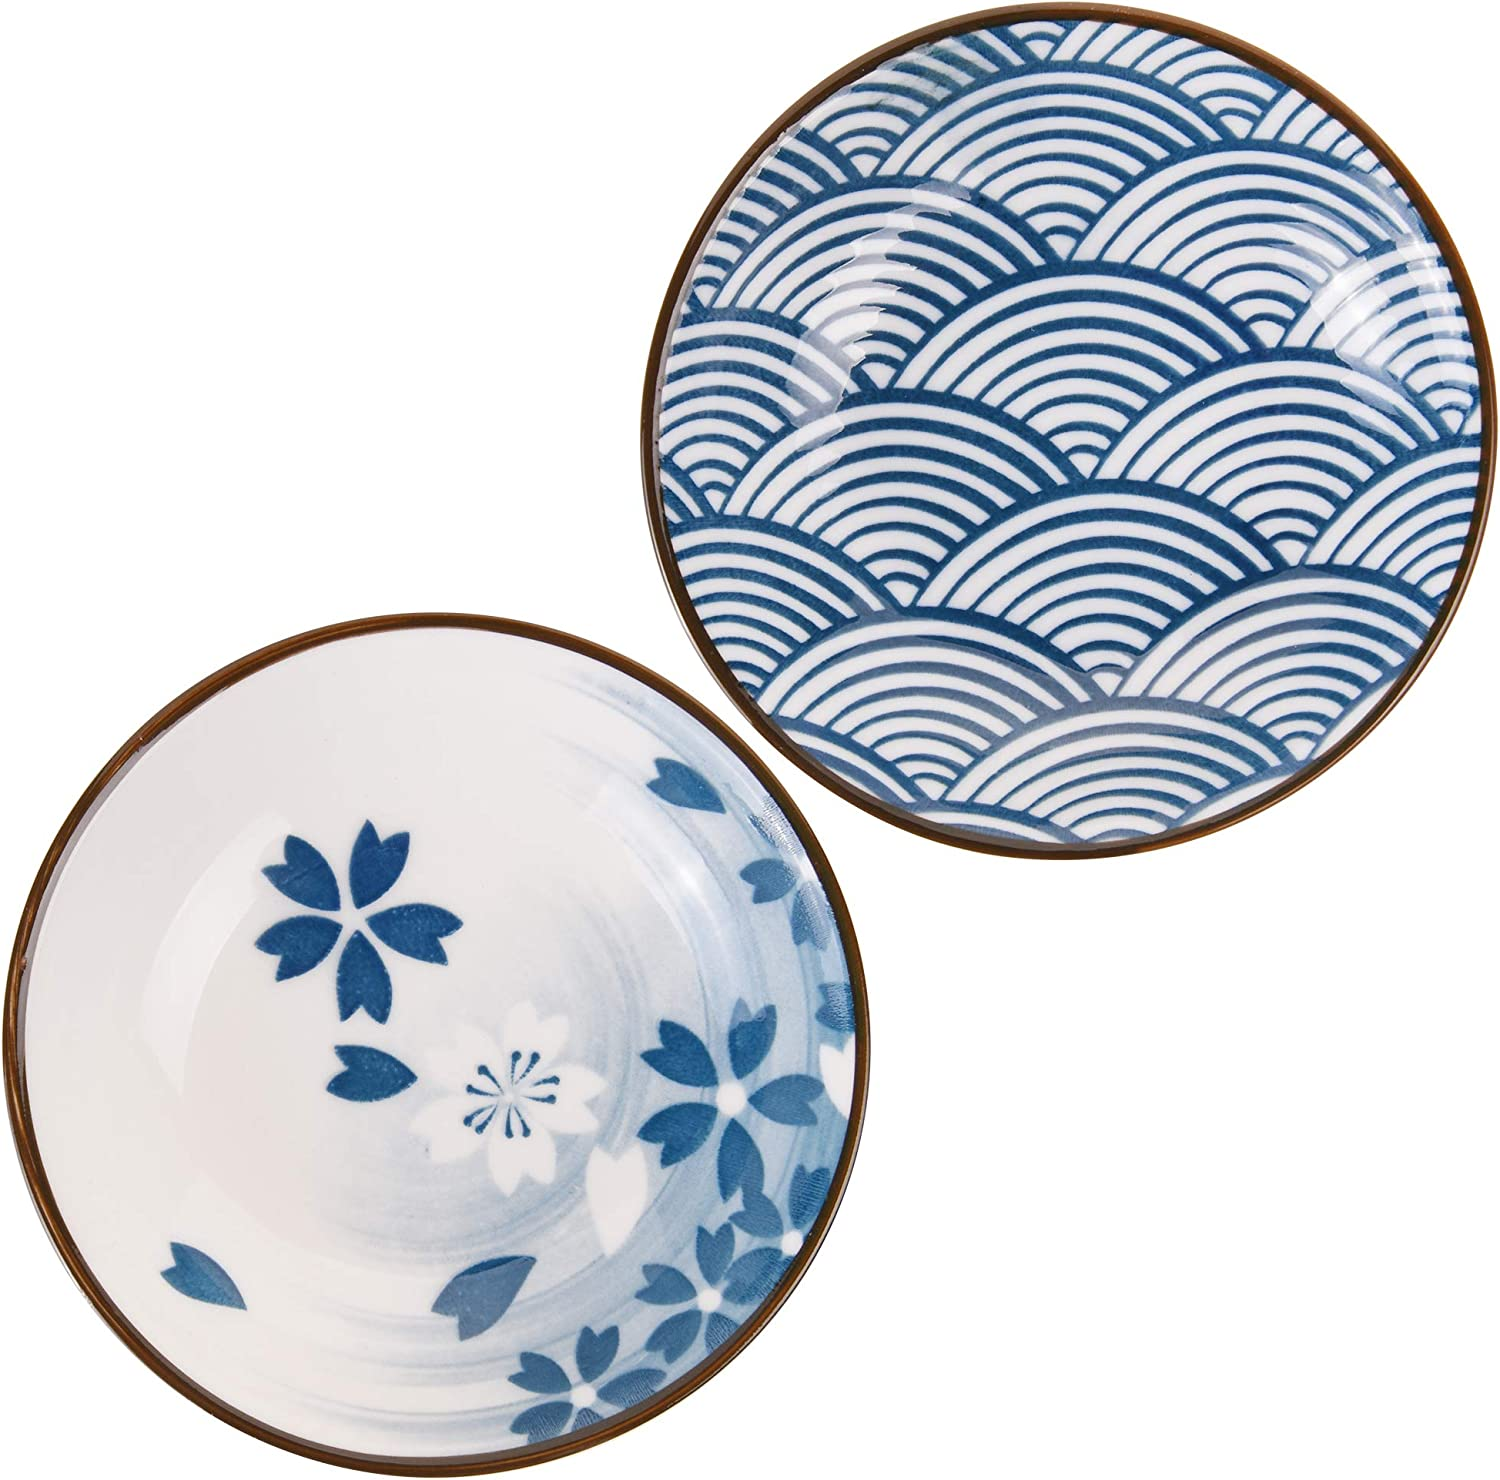 Beautyflier Set of 4 Ceramic Sauce Dish Soy Sauce Dipping Bowls Appetizer Plates Side Dishes Serving Dish Japanese Style Dinnerware Set Floral pattern